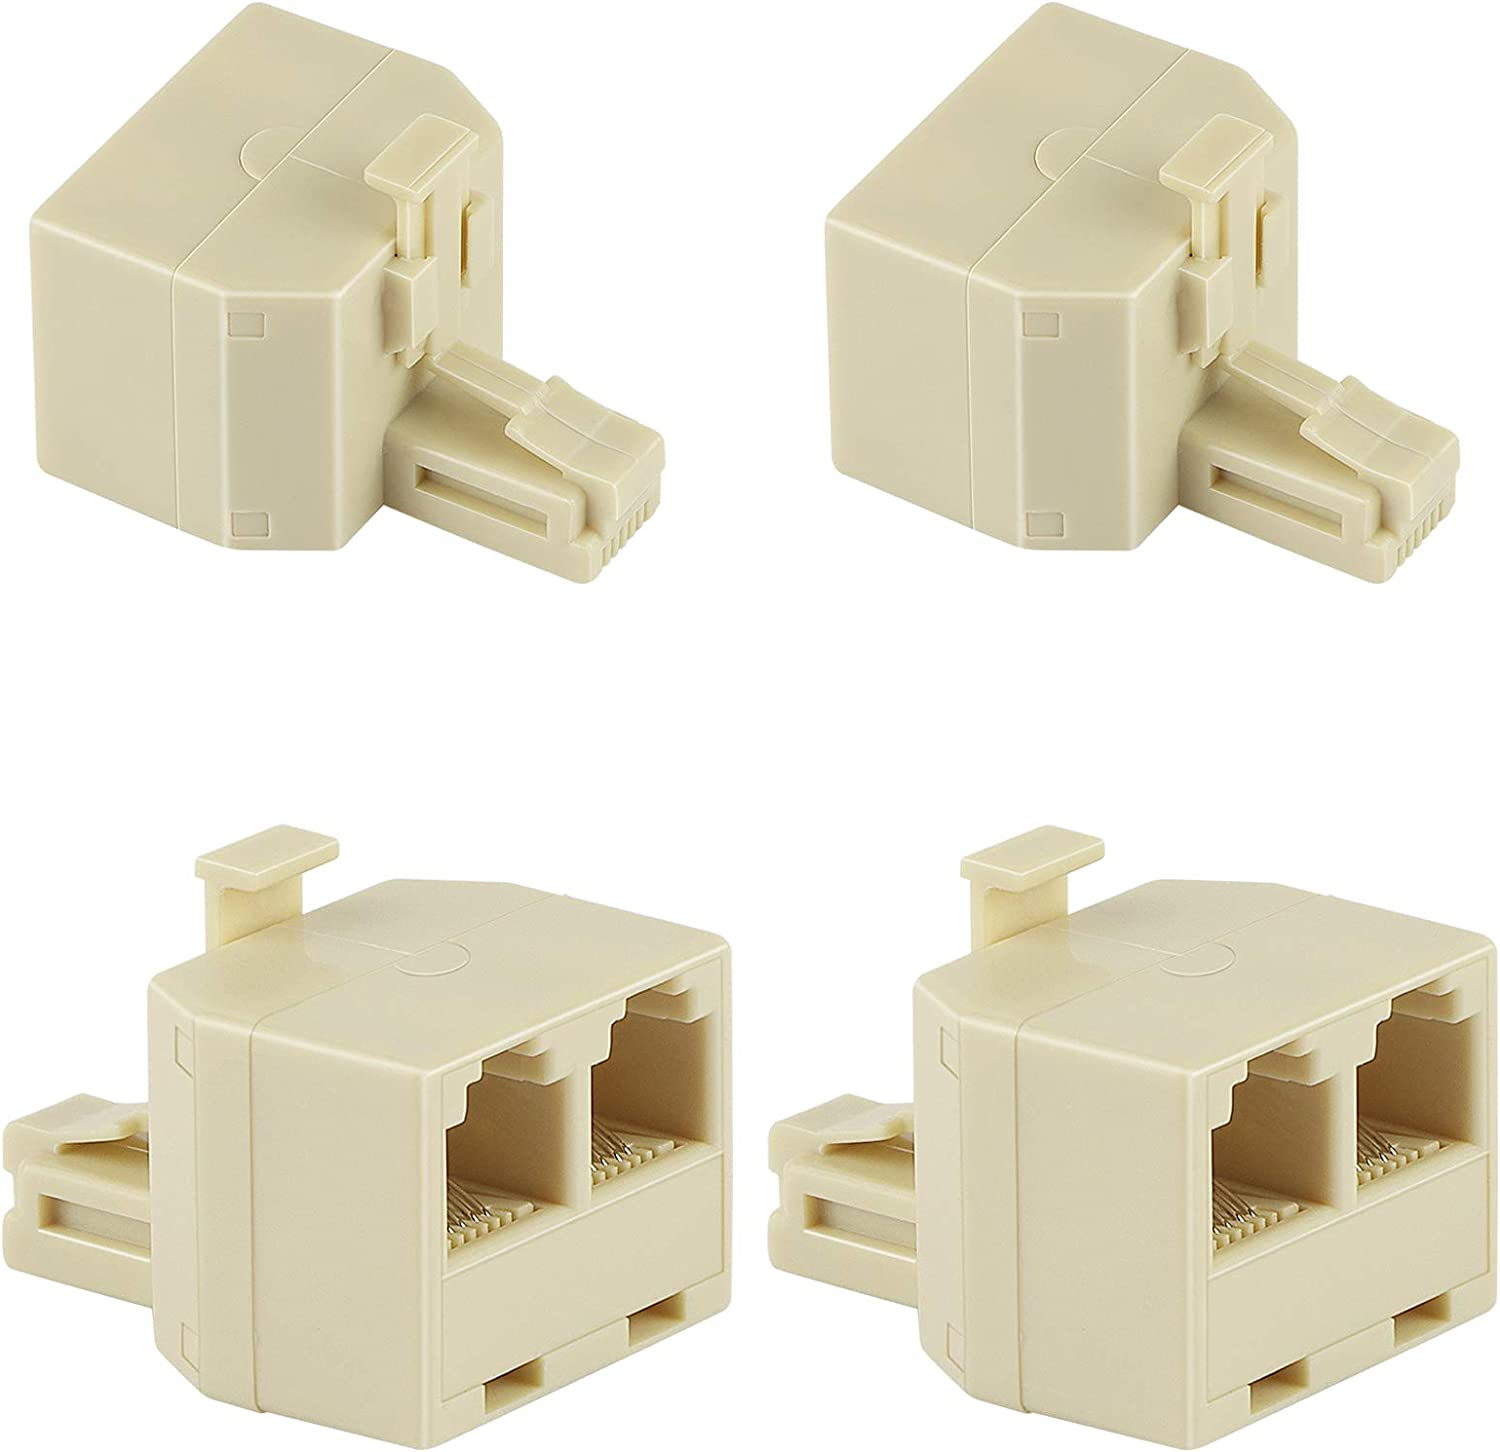 Uvital RJ11 Duplex Wall Jack Adapter Dual Phone Line Splitter Wall Jack Plug 1 to 2 Modular Converter Adapter for Office Home ADSL DSL Fax Model Cordless Phone System, Cream(4 Packs)